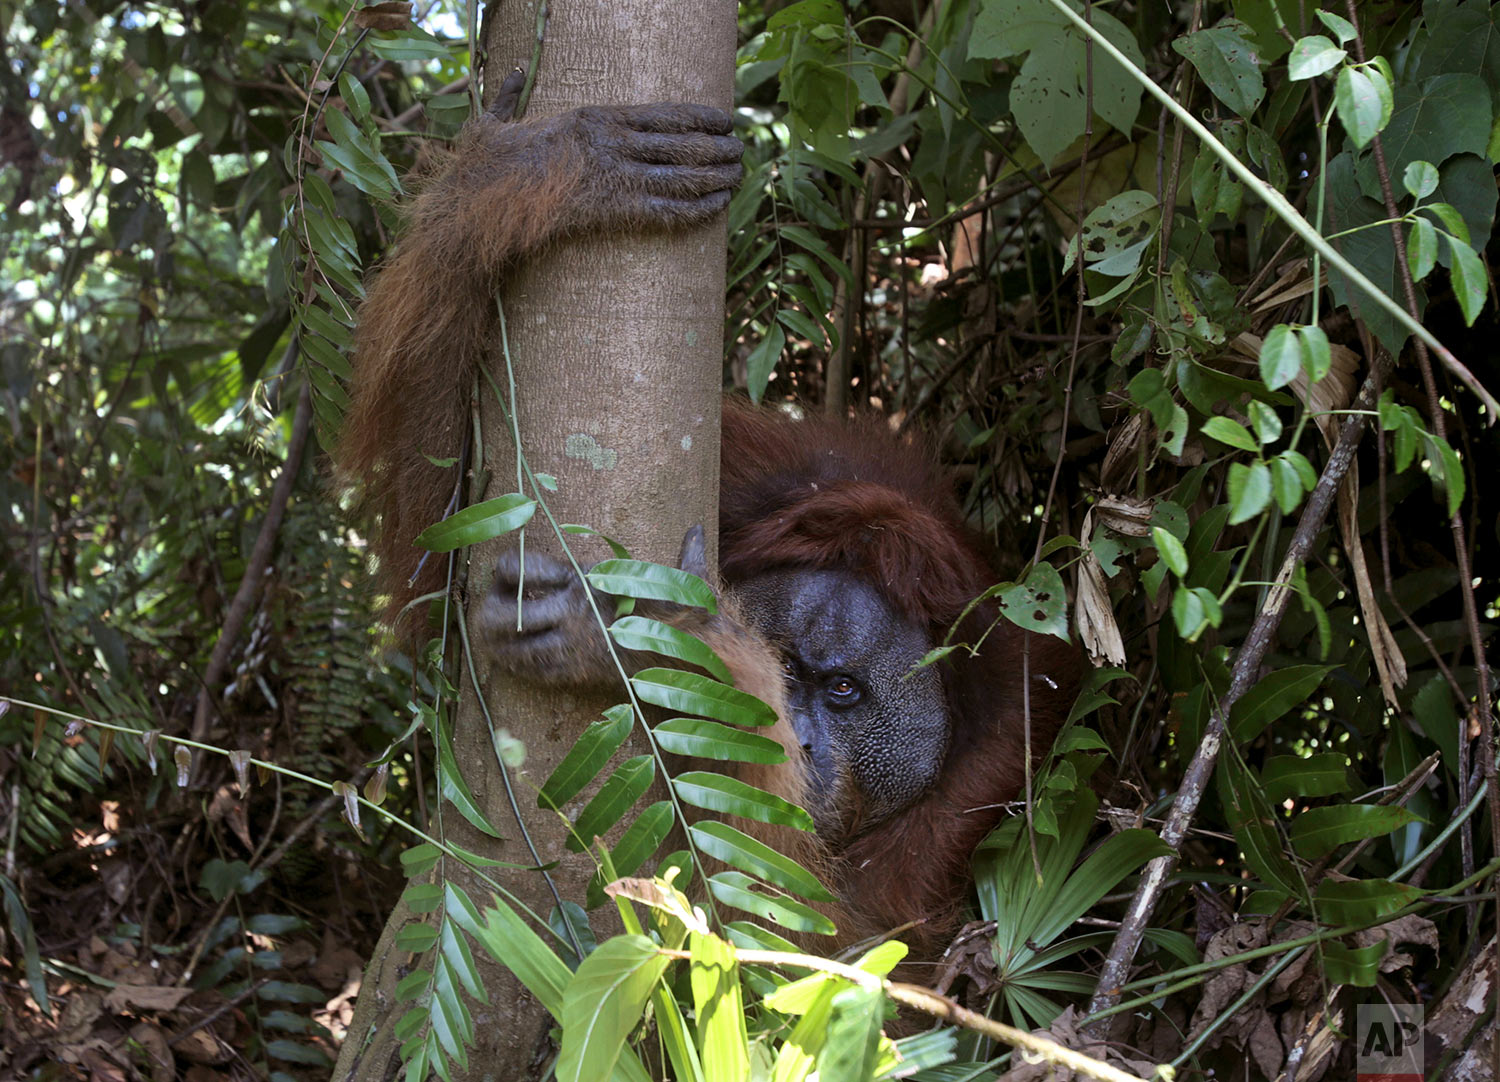 """In this Thursday, Aug. 10, 2017 photo, a tranquilized male orangutan holds on to a tree as it's being rescued from a swath of forest located too close to a palm oil plantation at Tripa peat swamp in Aceh province, Indonesia. Conservationists from Sumatran Orangutan Conservation Program (SOCP) relocated the orangutan they named """"Black"""" to a reintroduction center in Jantho, Aceh Besar where he will join about 100 other primates that have been released in the jungle there to establish a new wild population. (AP Photo/Binsar Bakkara)"""